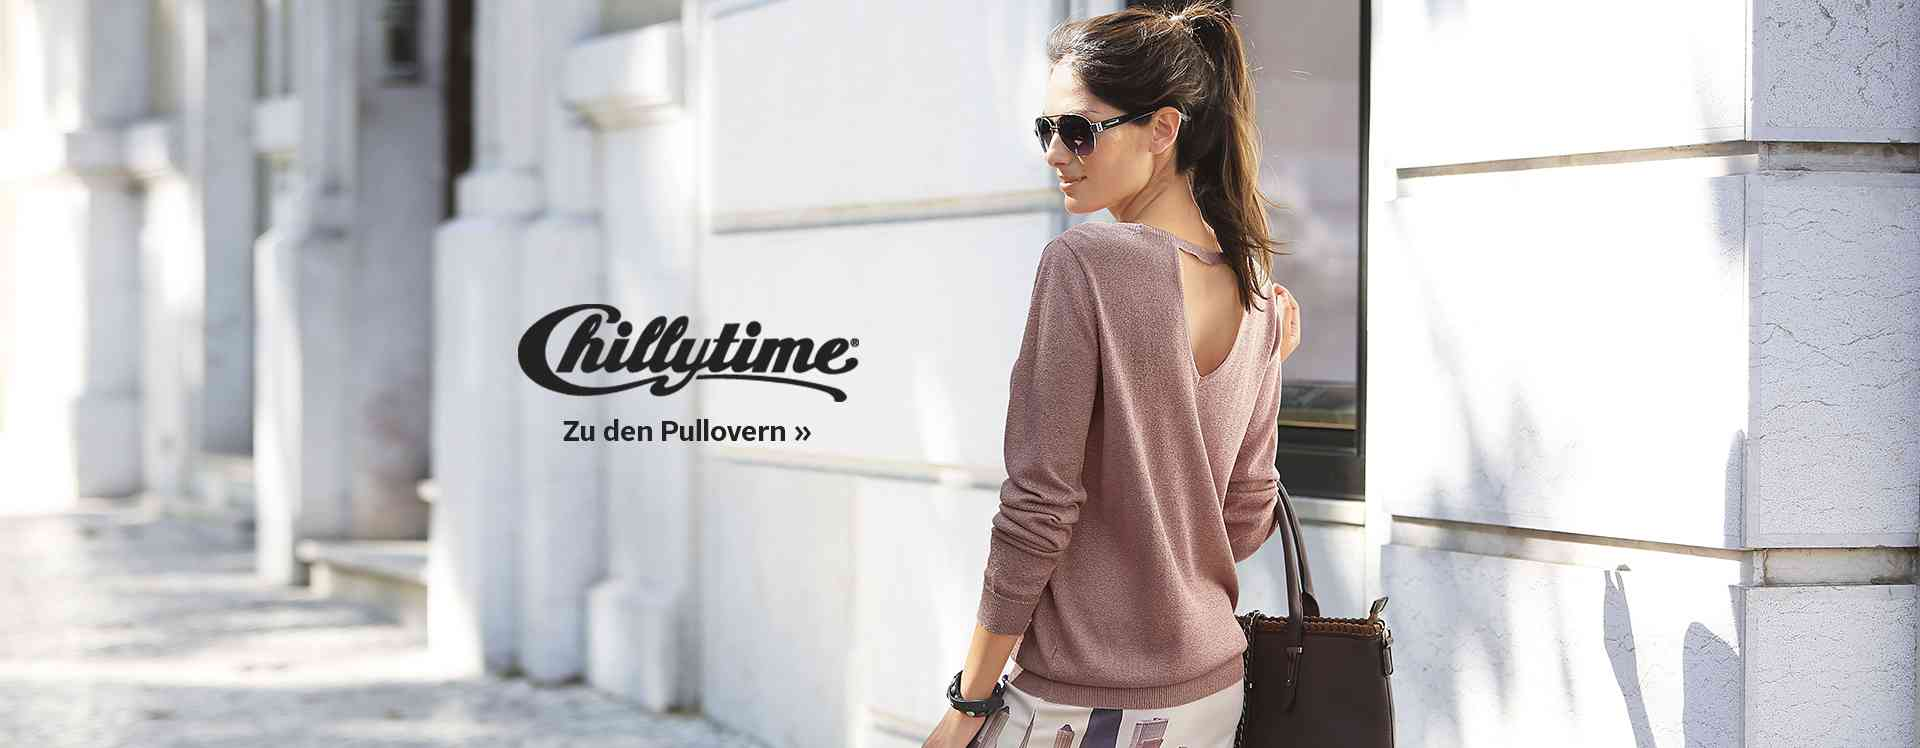 Chillytime Pullover